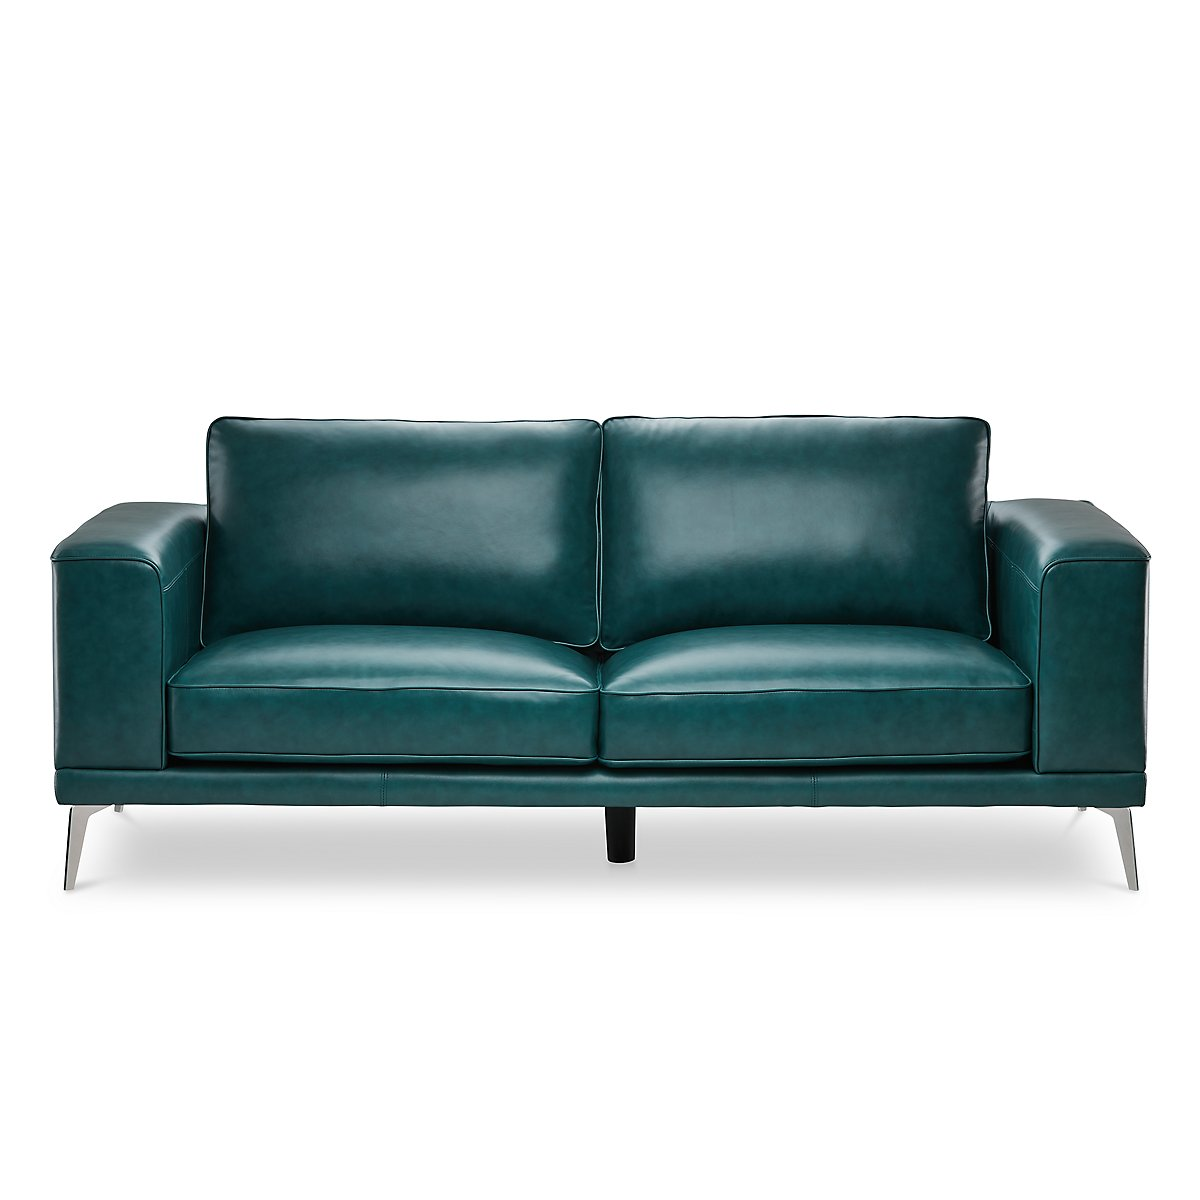 Naples Turquoise Leather Sofa With Metal Legs Living